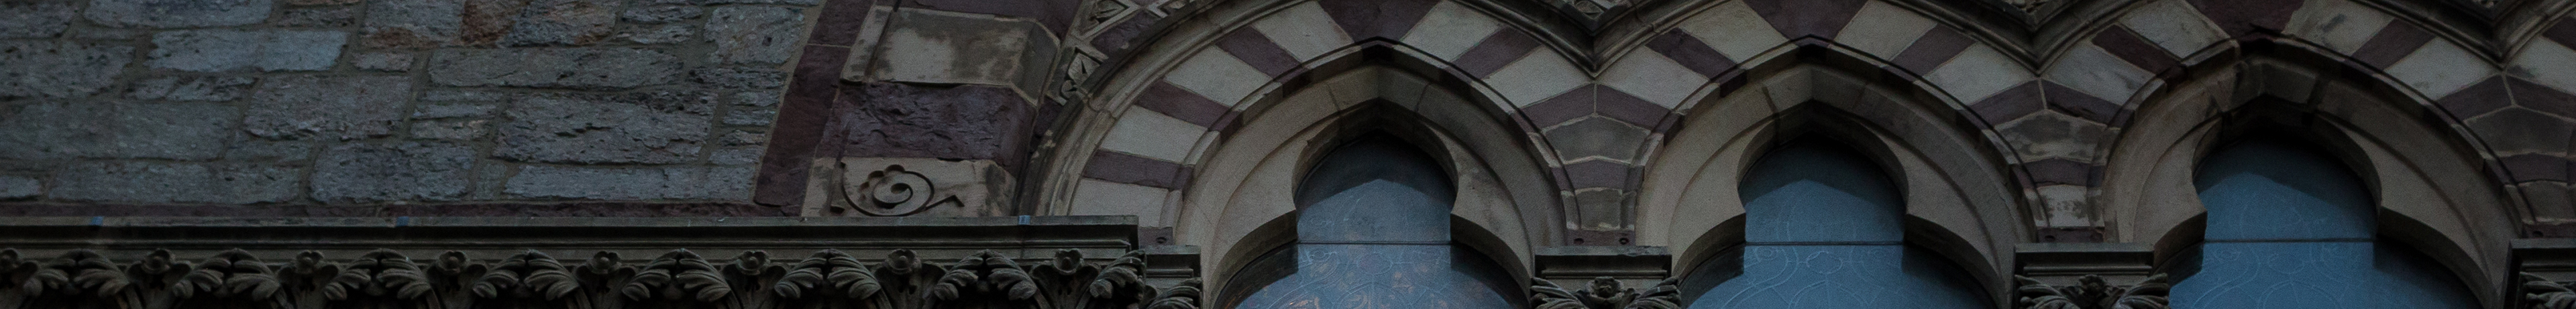 Architectural detail of window arches on Old South Church in Boston